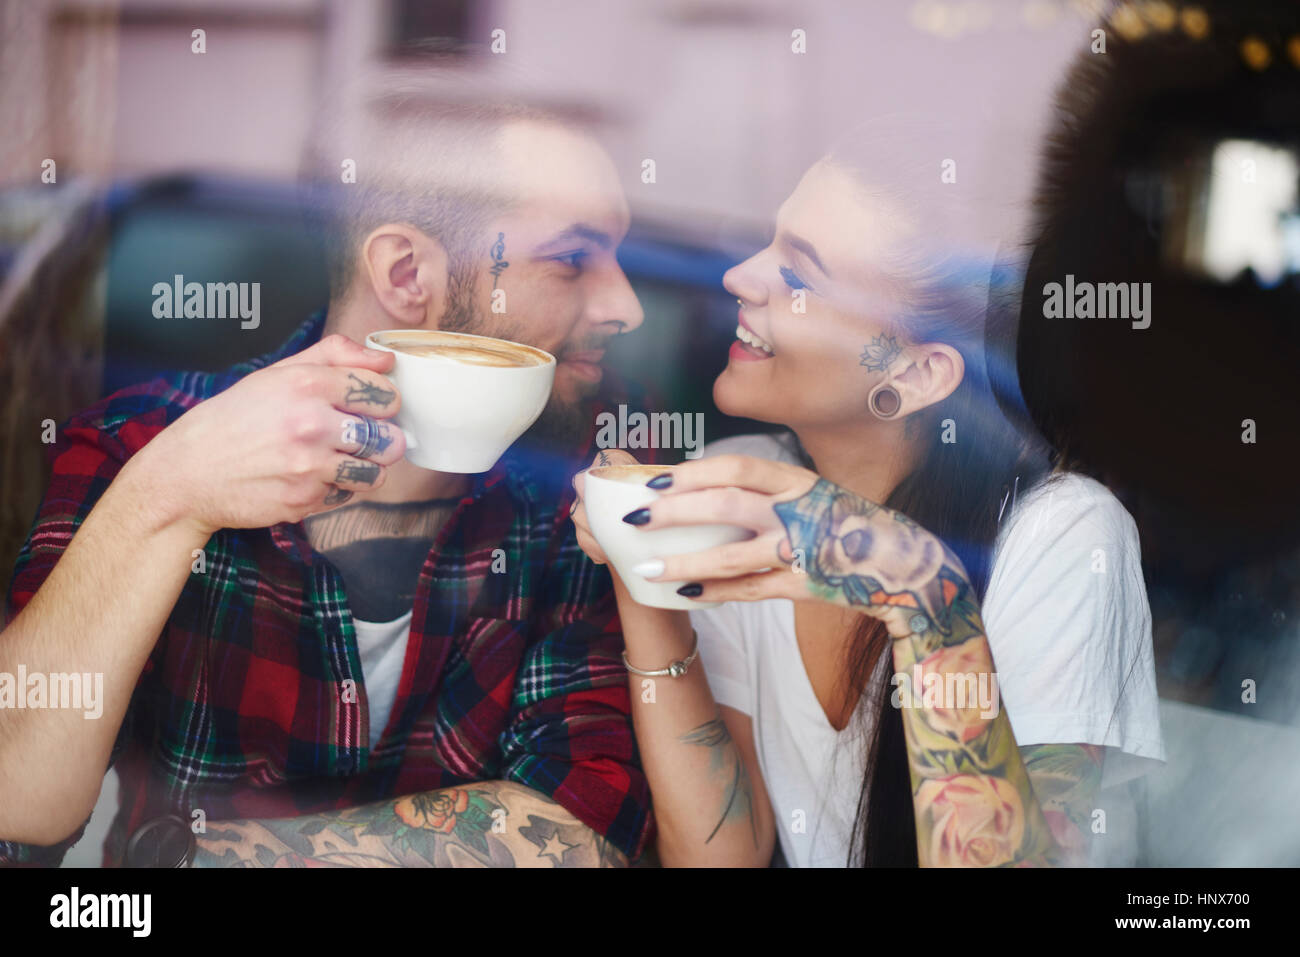 View through window of couple in coffee shop face to face smiling - Stock Image